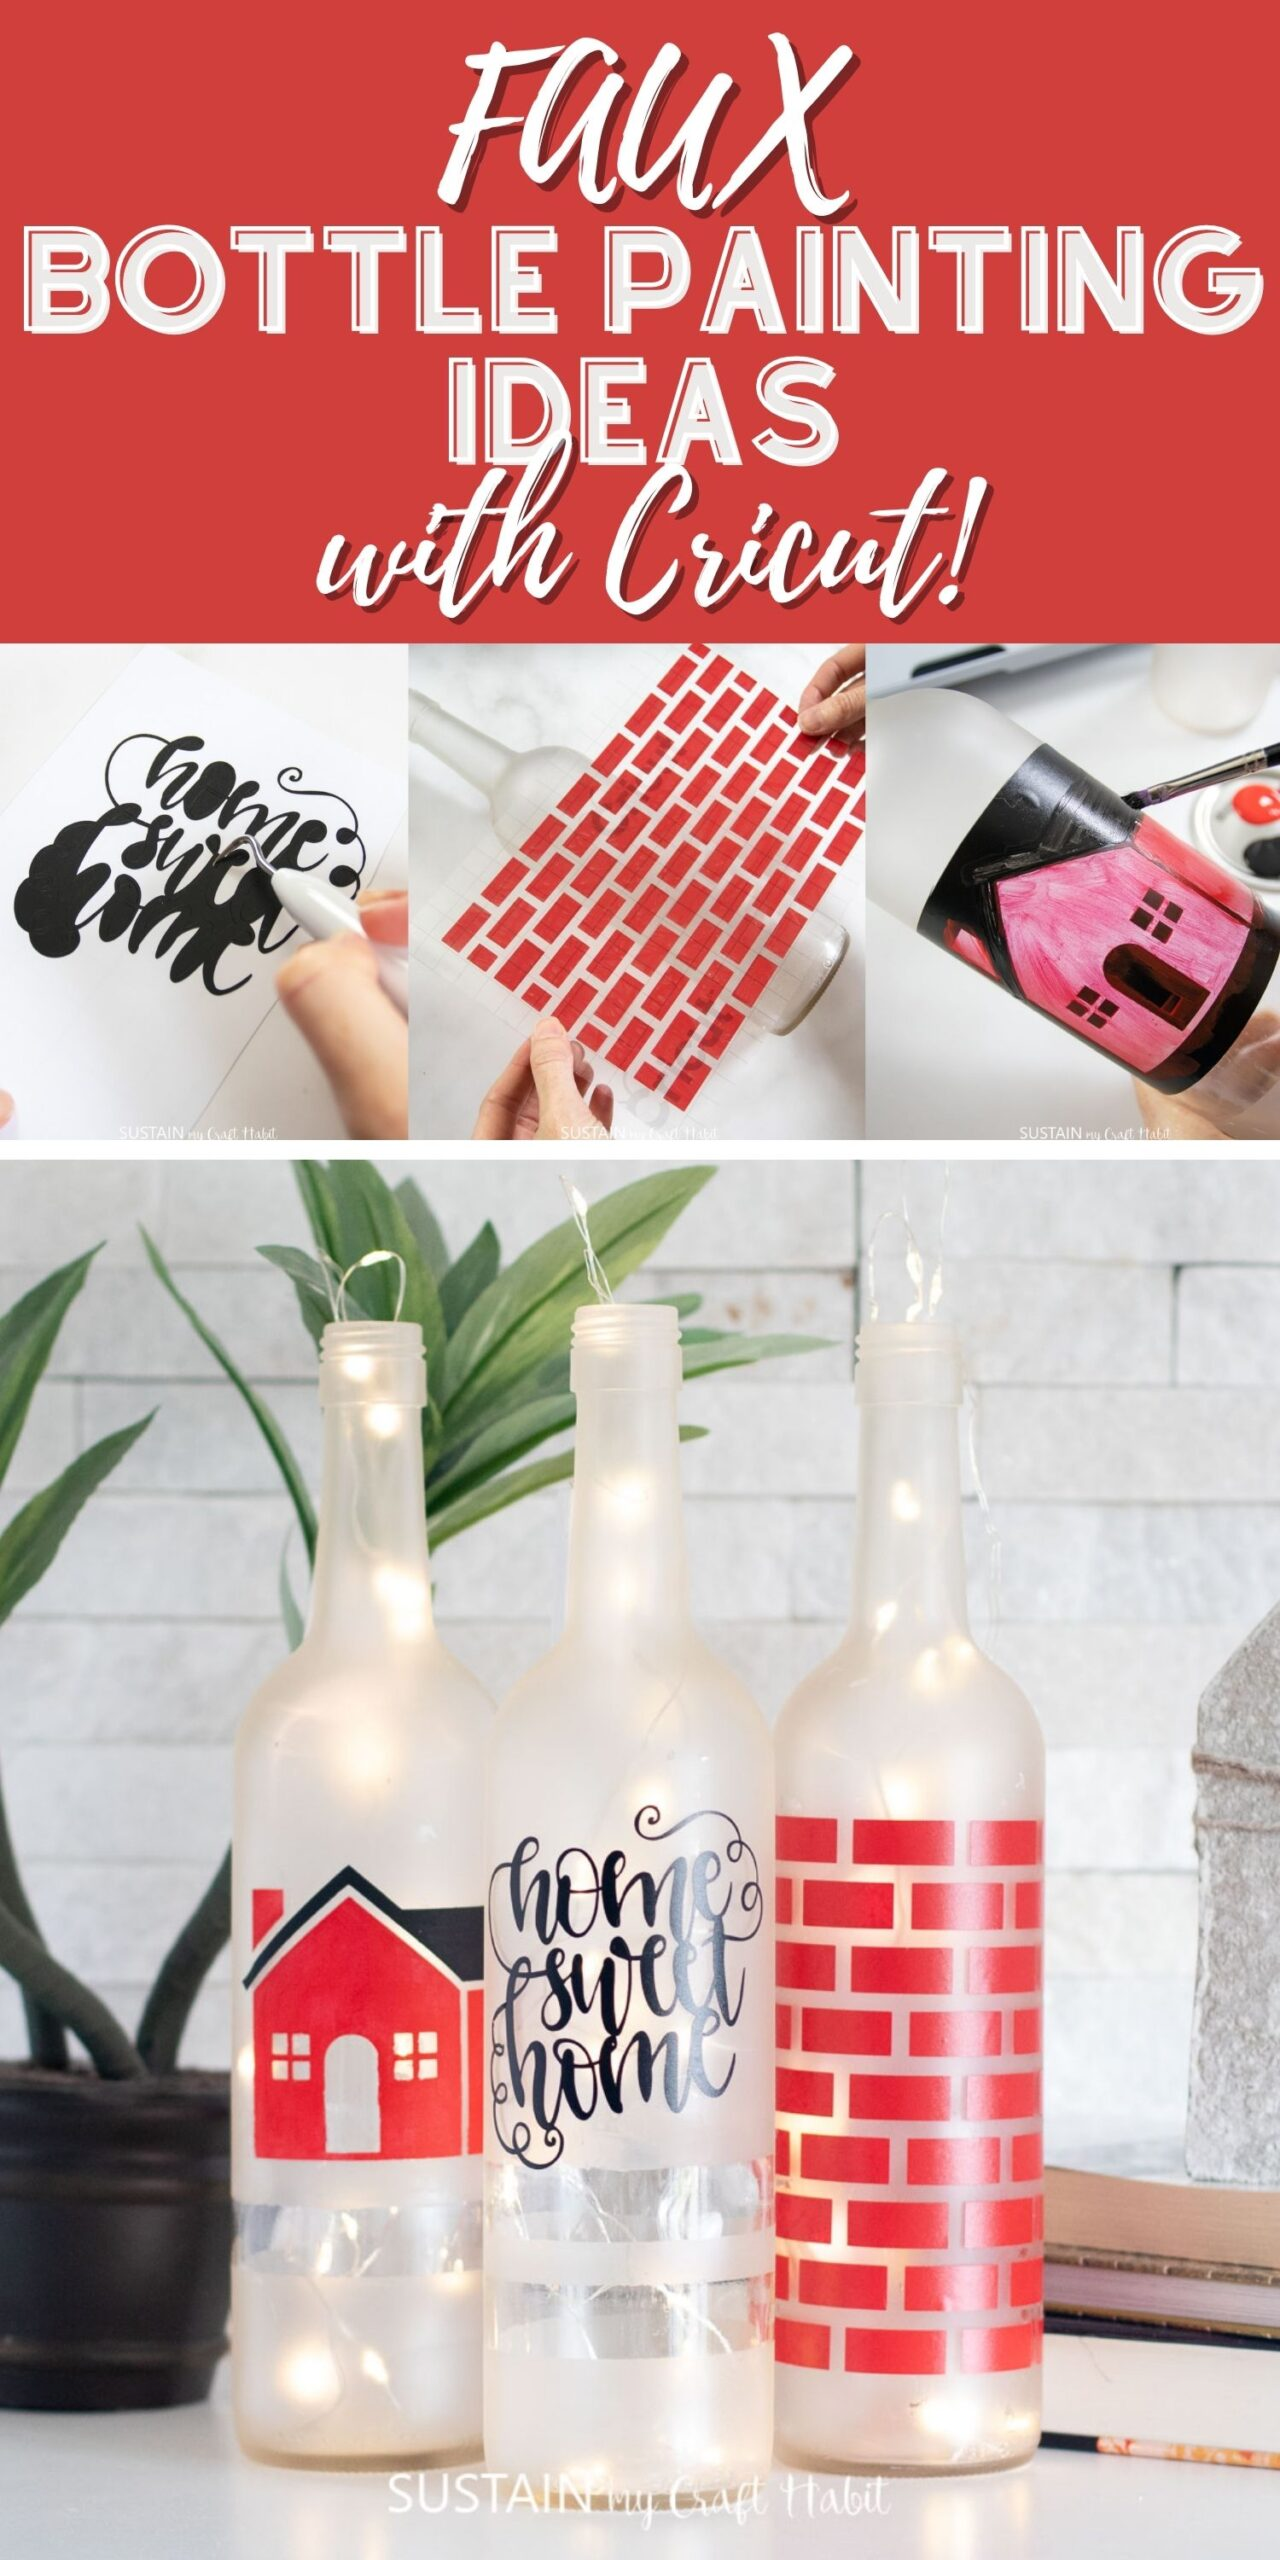 Collage of images of various steps of the project with text overlay reading faux bottle painting ideas with Cricut.